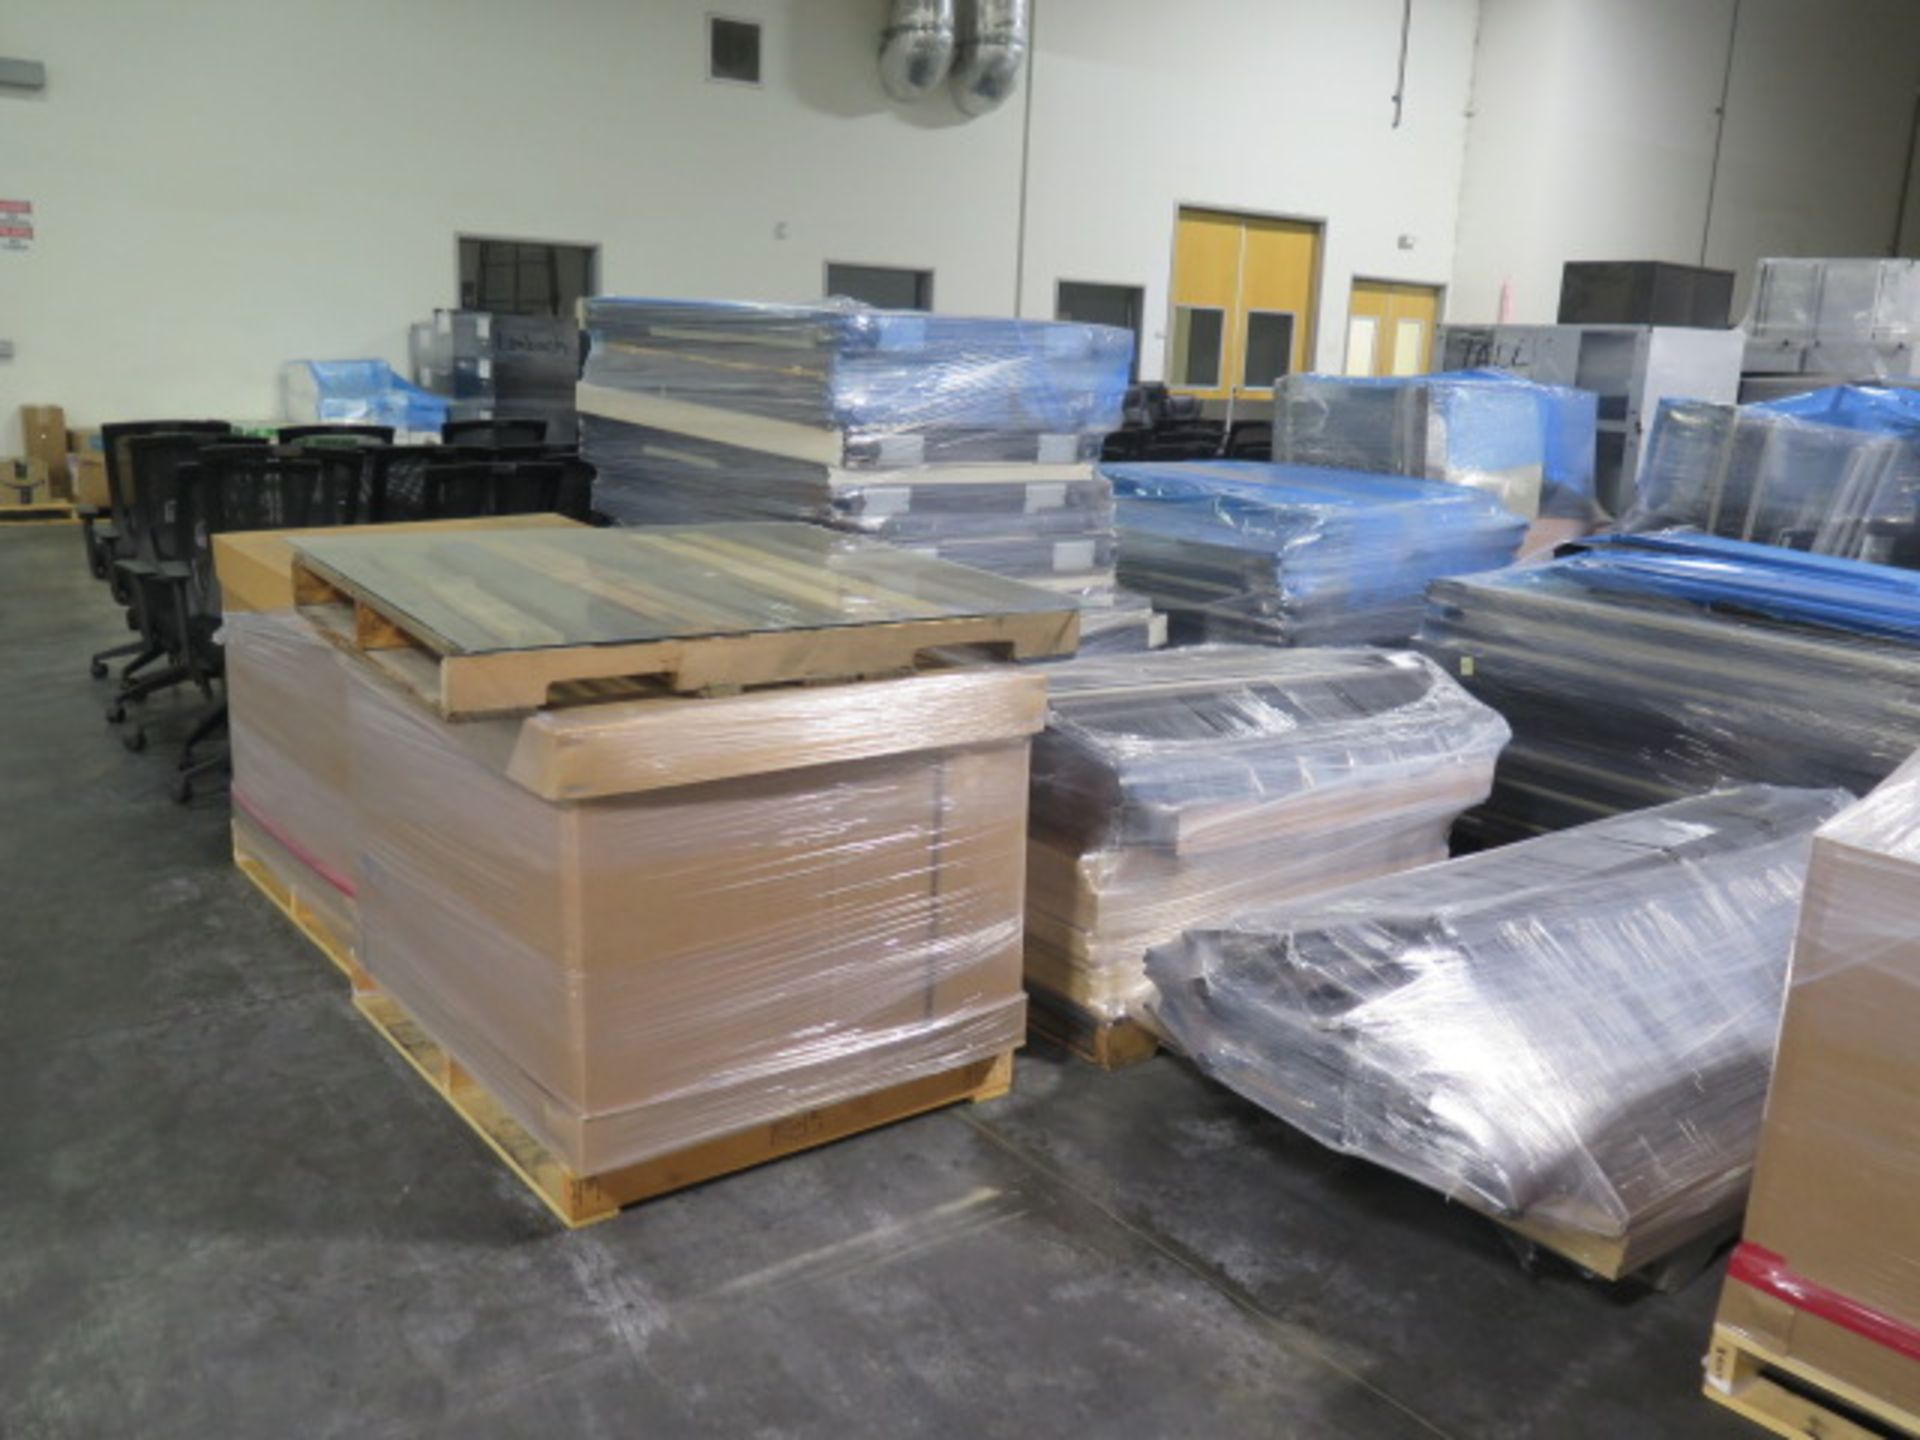 Large Quantity of Office Partitions, Desks, File Cabinets and Storage Cabinets (SOLD AS-IS - NO WARA - Image 15 of 24